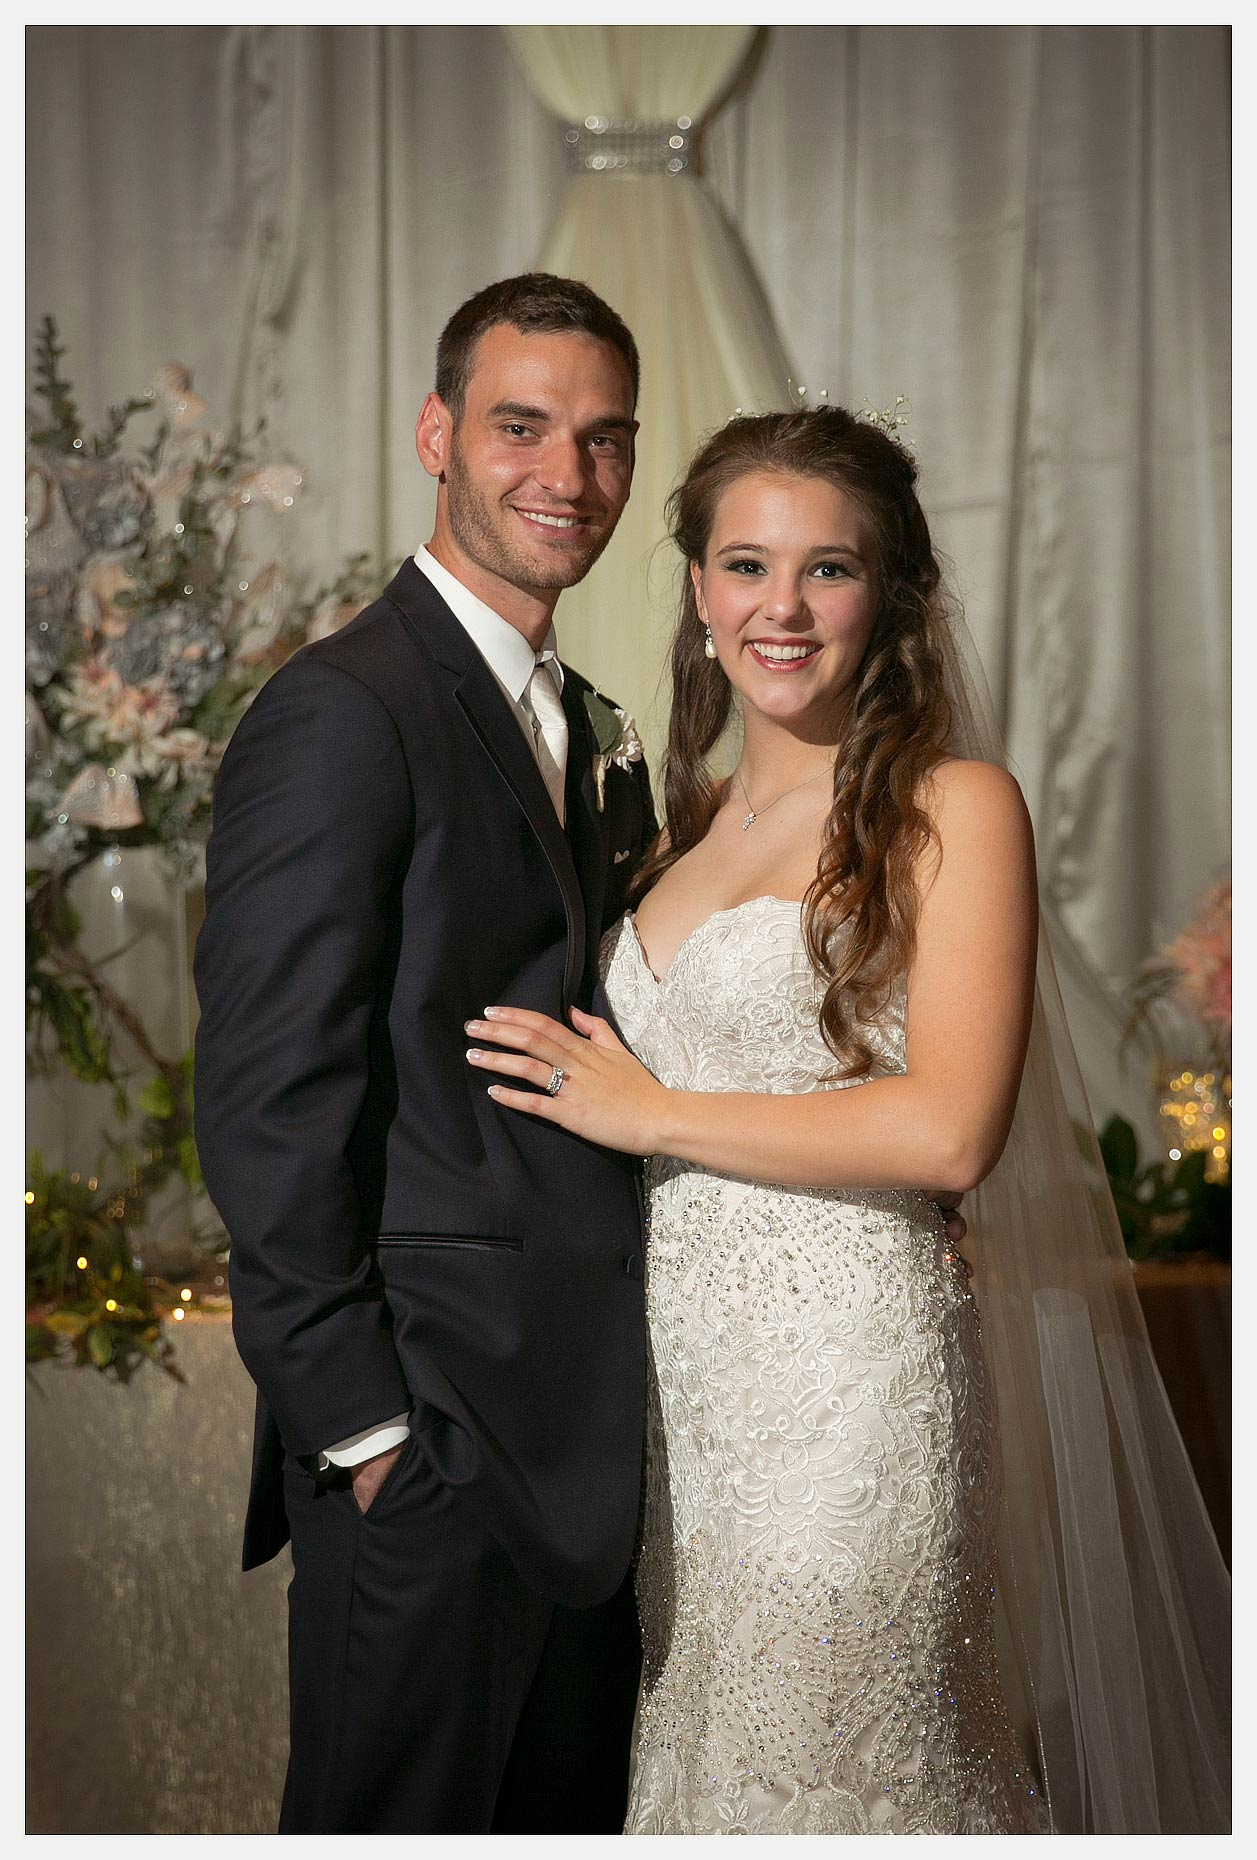 Madison-Carver-Wedding-by-Stephen-Masker-Photography-0098